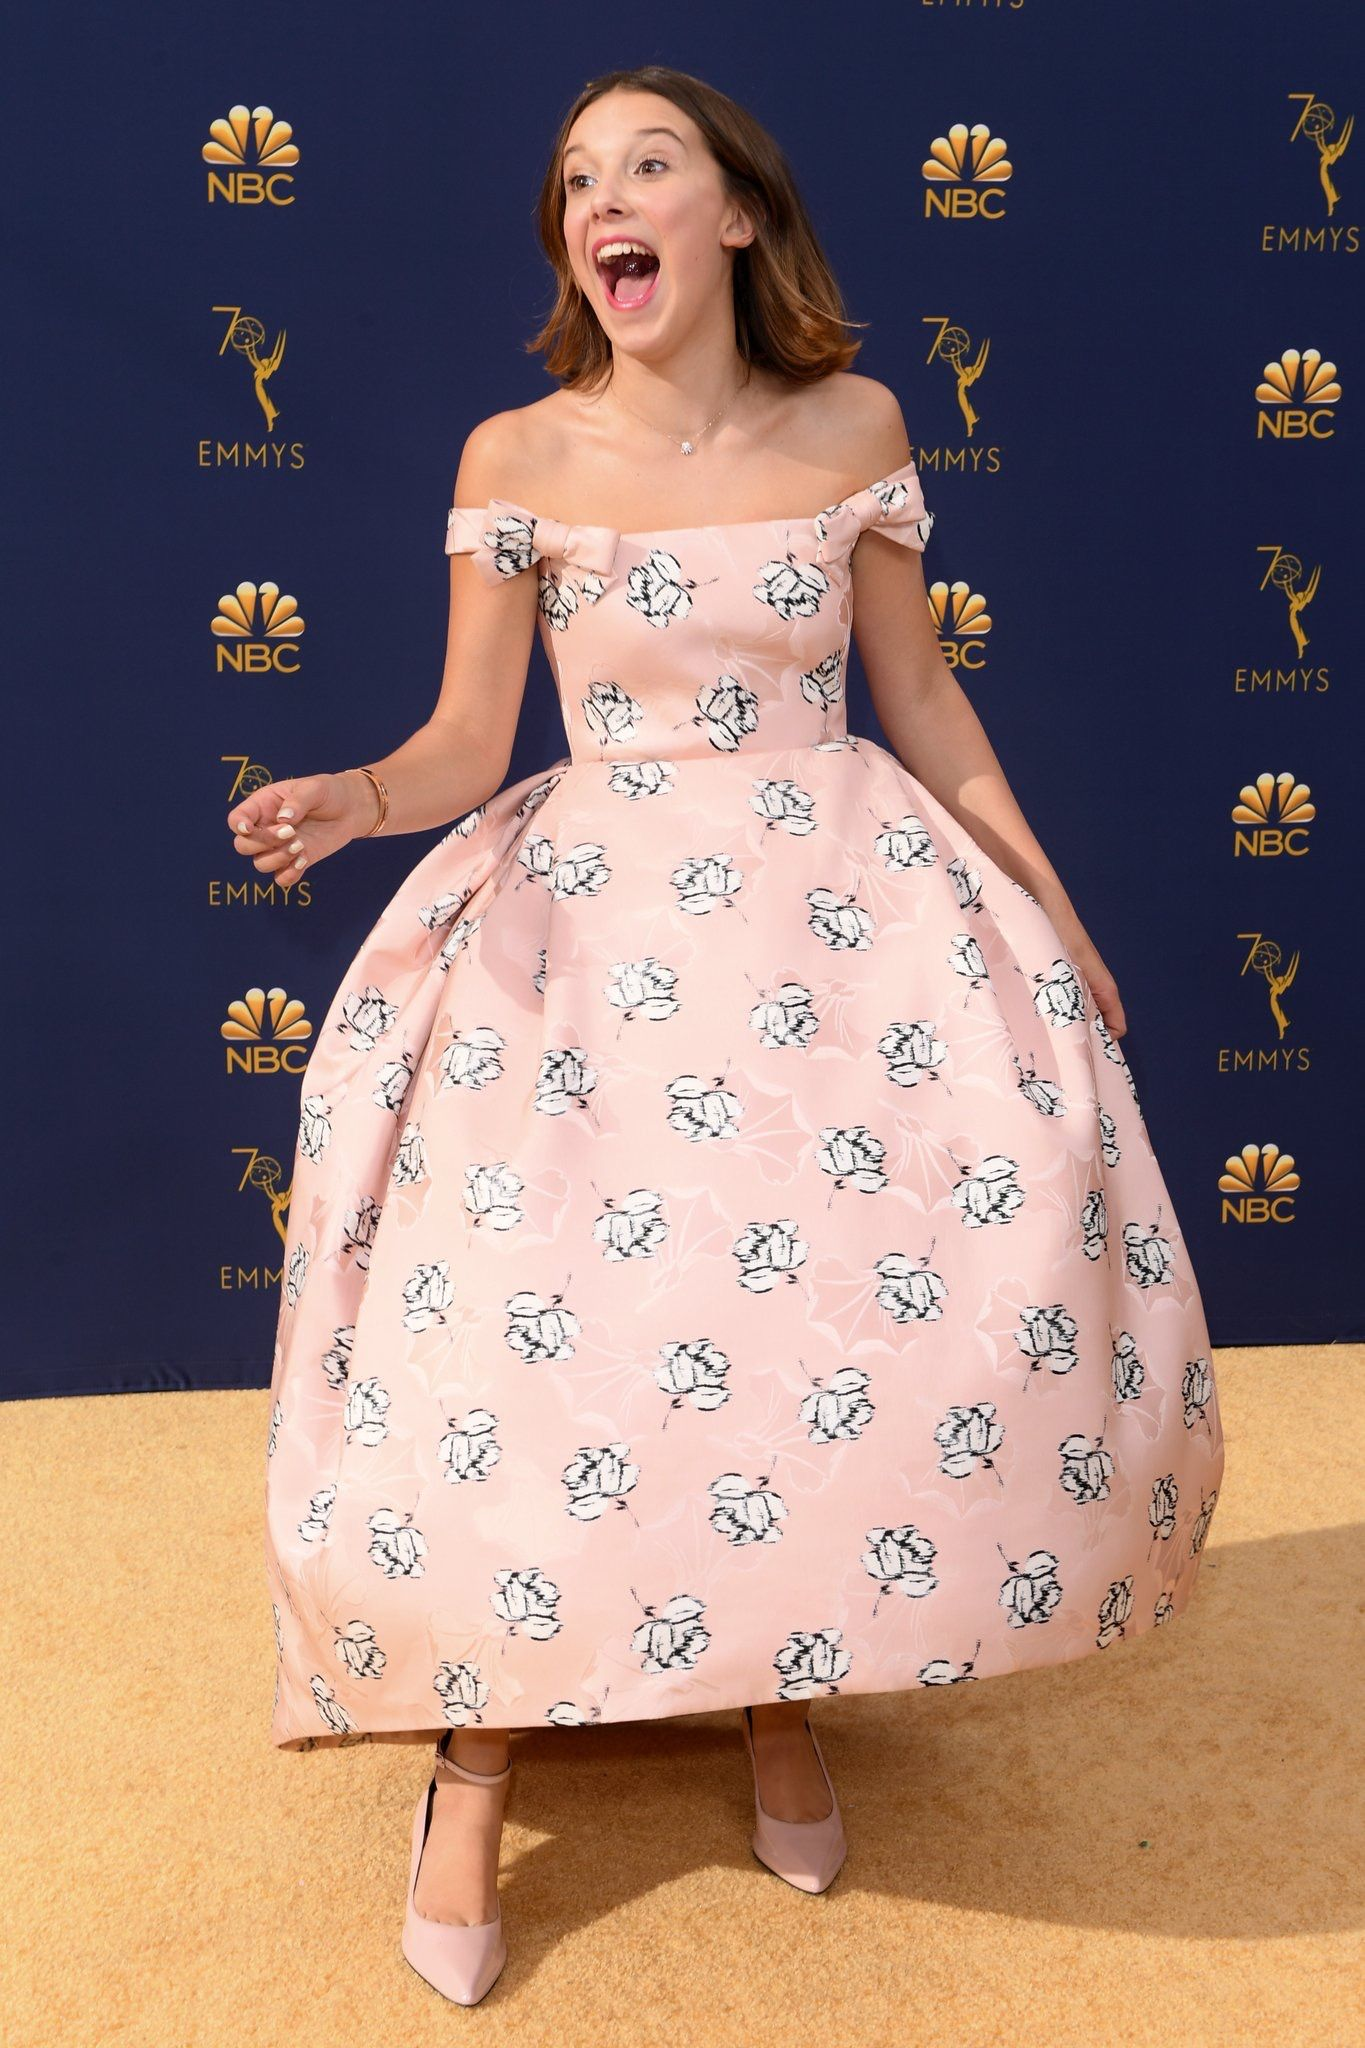 Millie Bobby Brown At The 70th Television Academy The Emmy Awards Millie Bobby Brown Bobby Brown Famosos